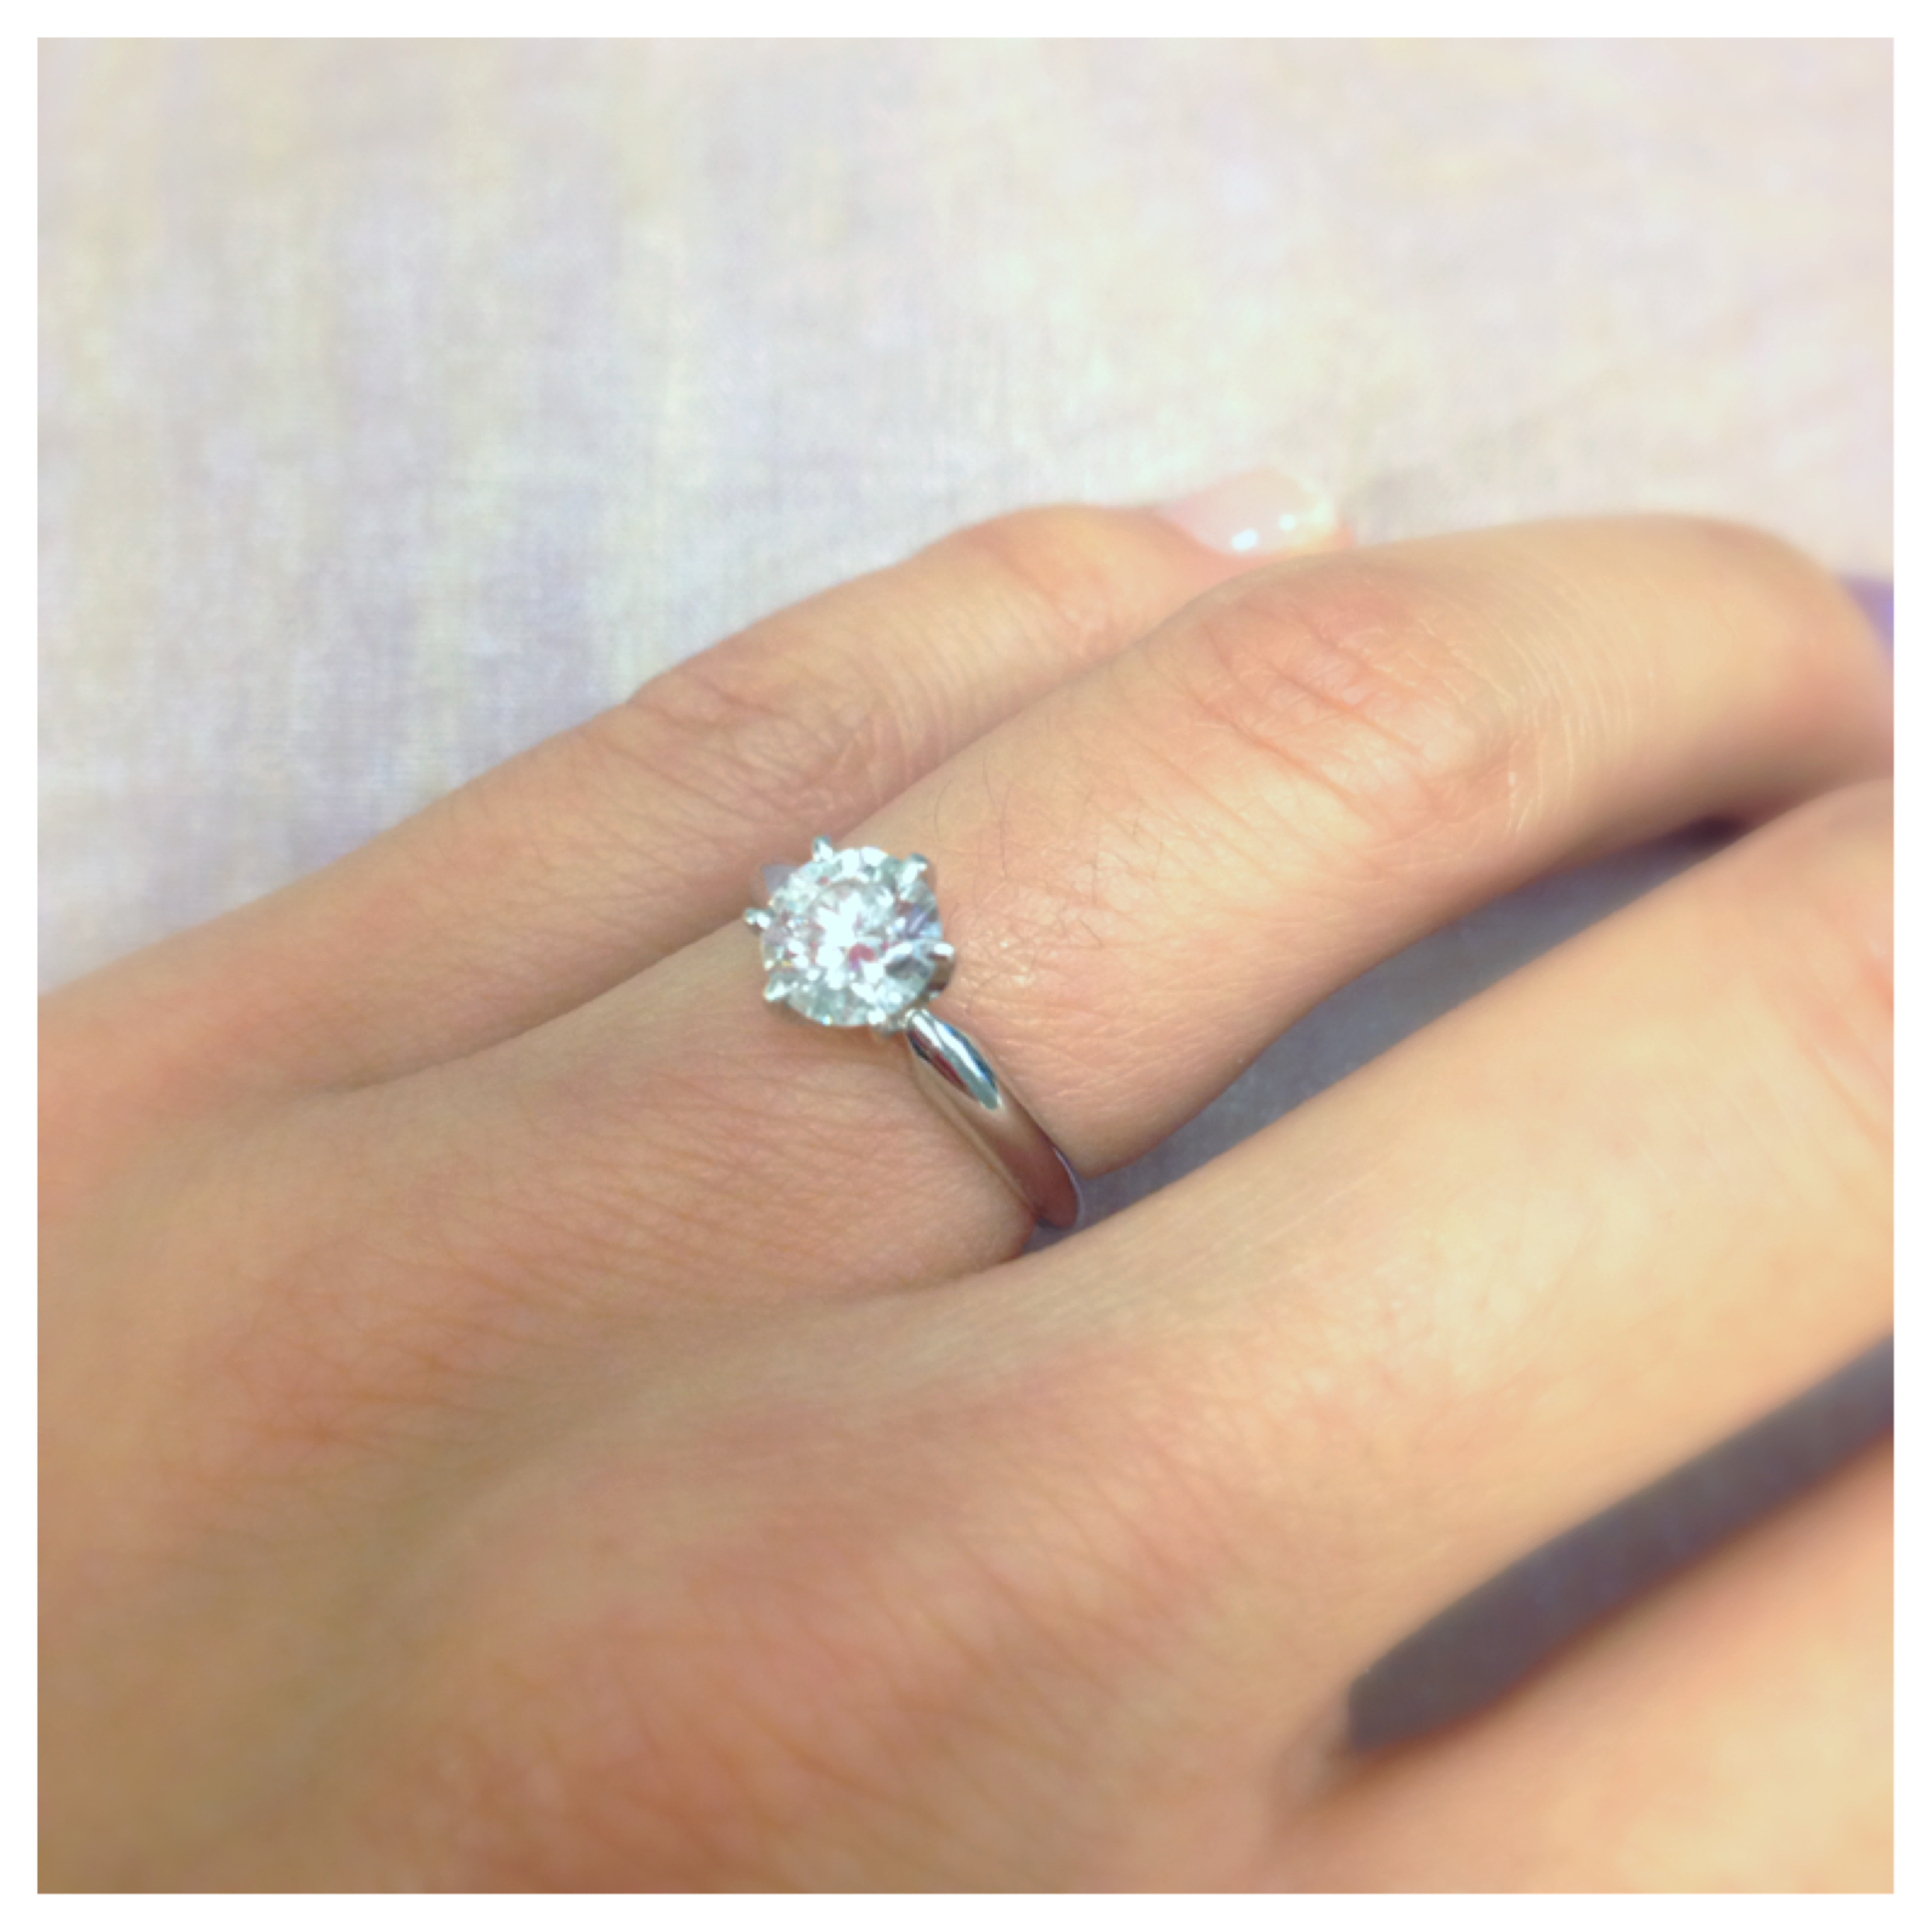 After All, No One Could Have Guessed That My Sparkling Diamond Was Labgrown  Whenever I Told Someone That It Was A Labcreated Diamond,